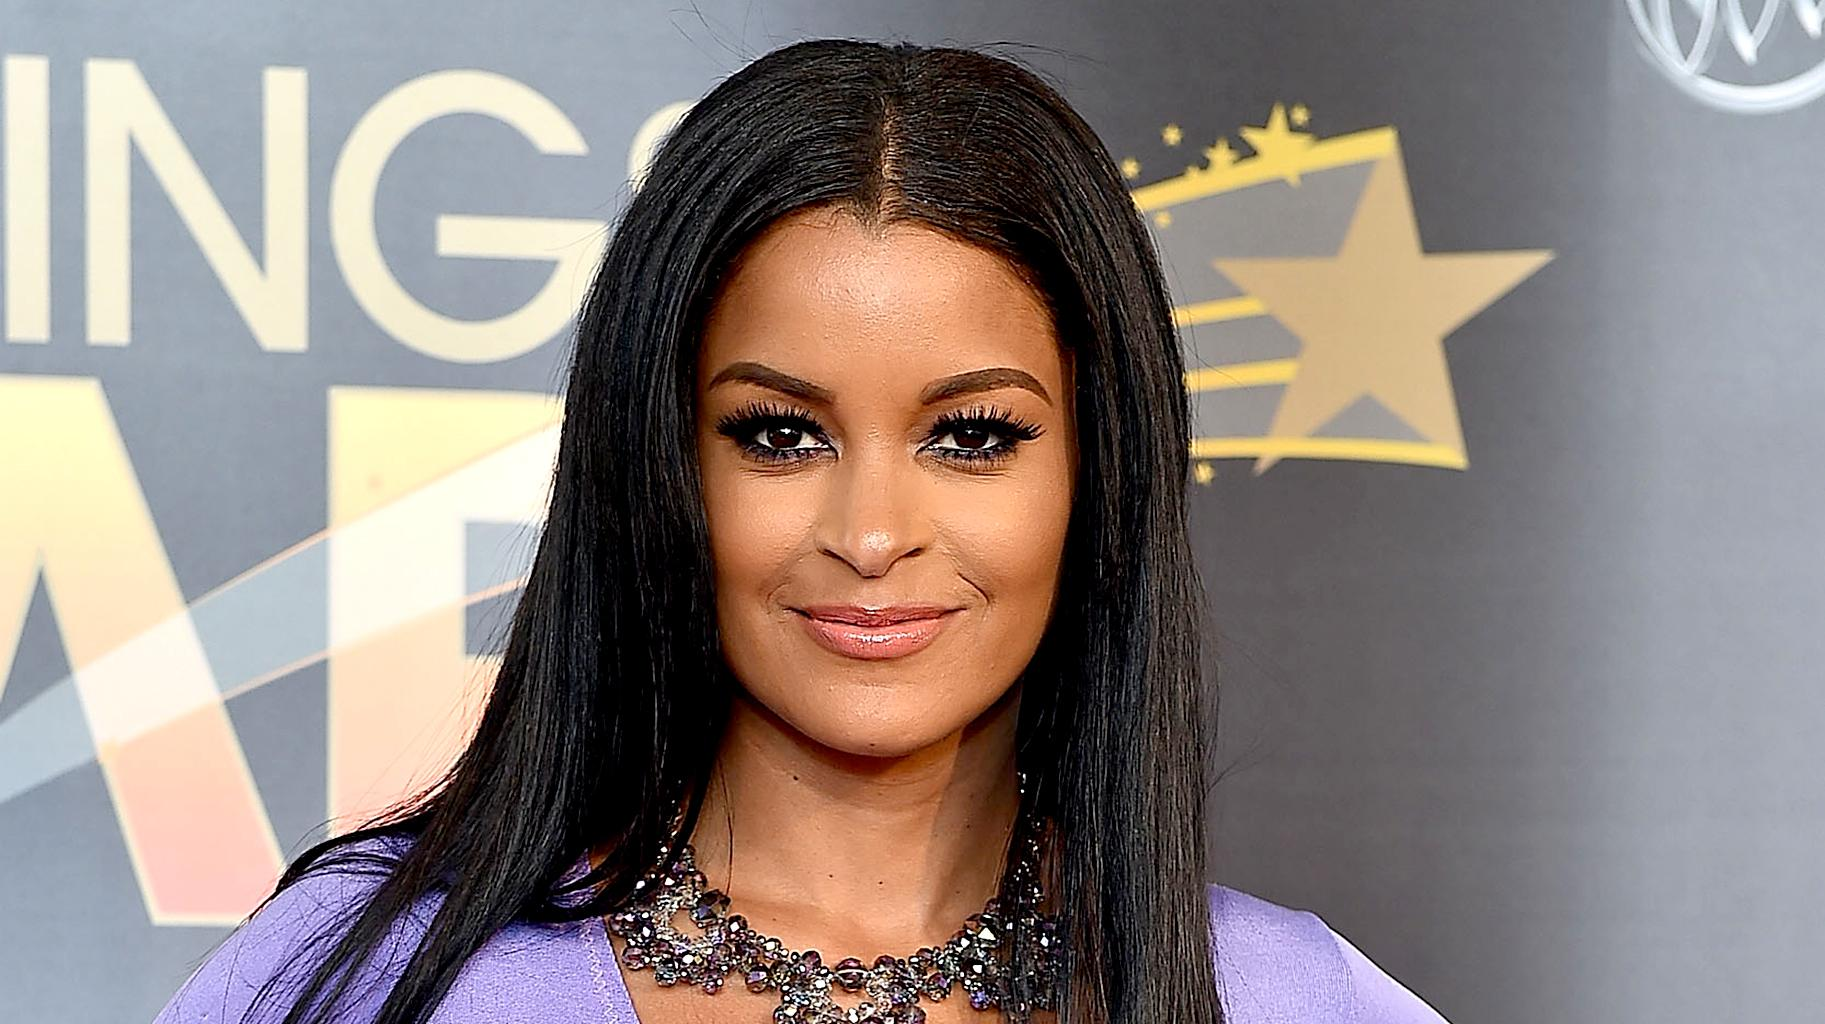 Claudia Jordan Fakes Pregnancy For April Fools' Day And People Slam Her For The Gesture Especially In Such A Sad Day For The Whole Community: 'It's In Poor Taste To Fake A Pregnancy'